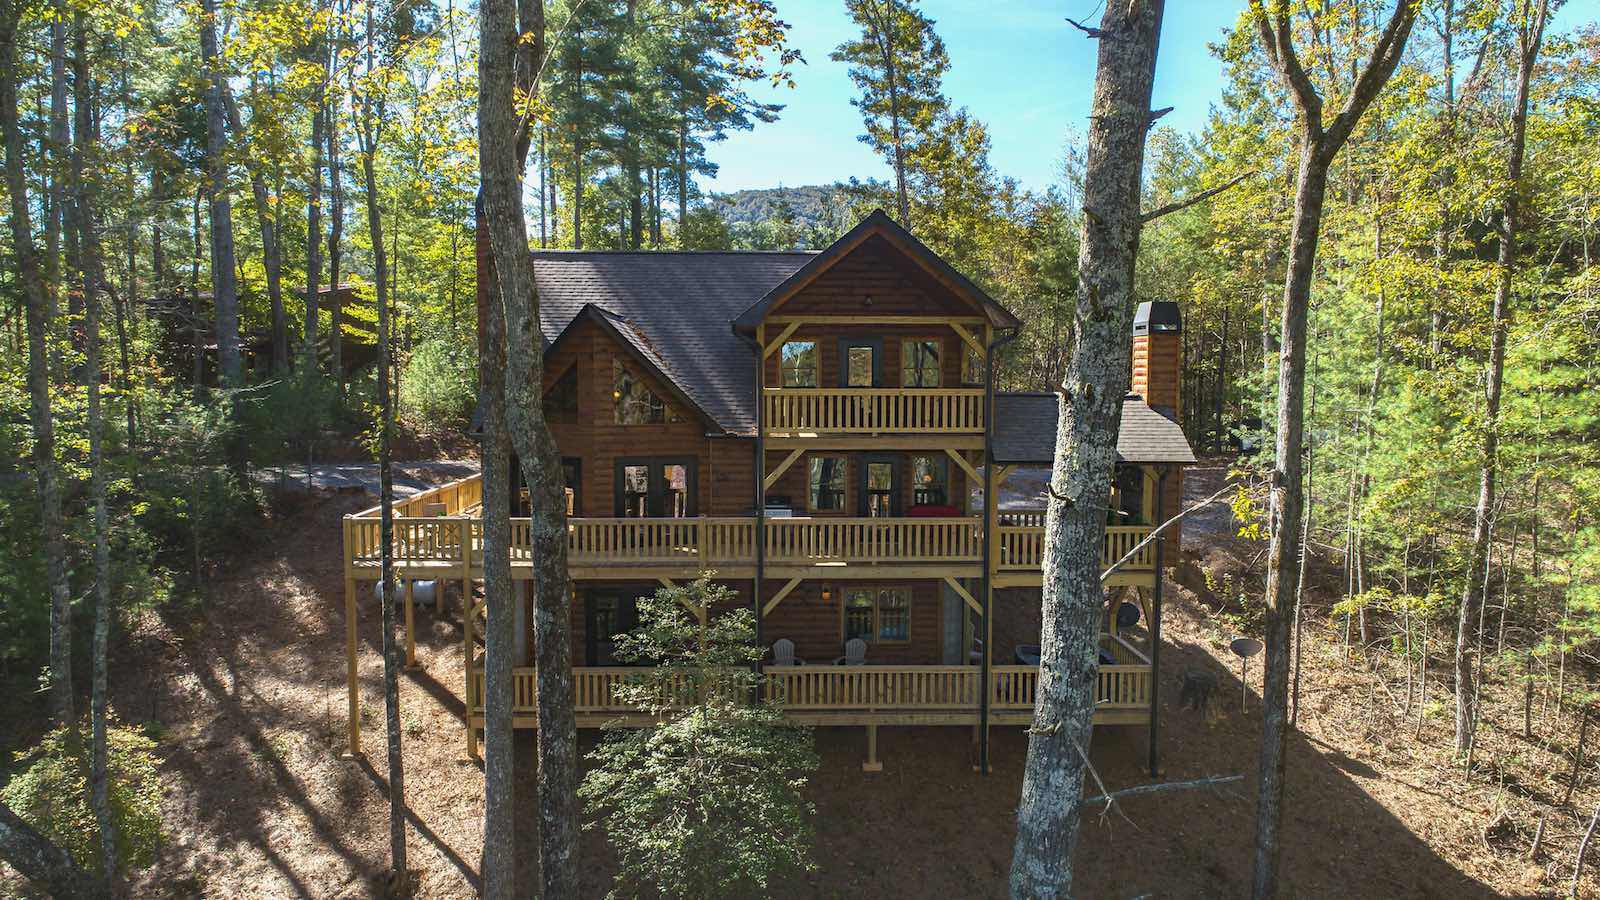 with cabins vacation cabin abound by lake georgia luxury waterfront trends house in comfy that the for rentals home